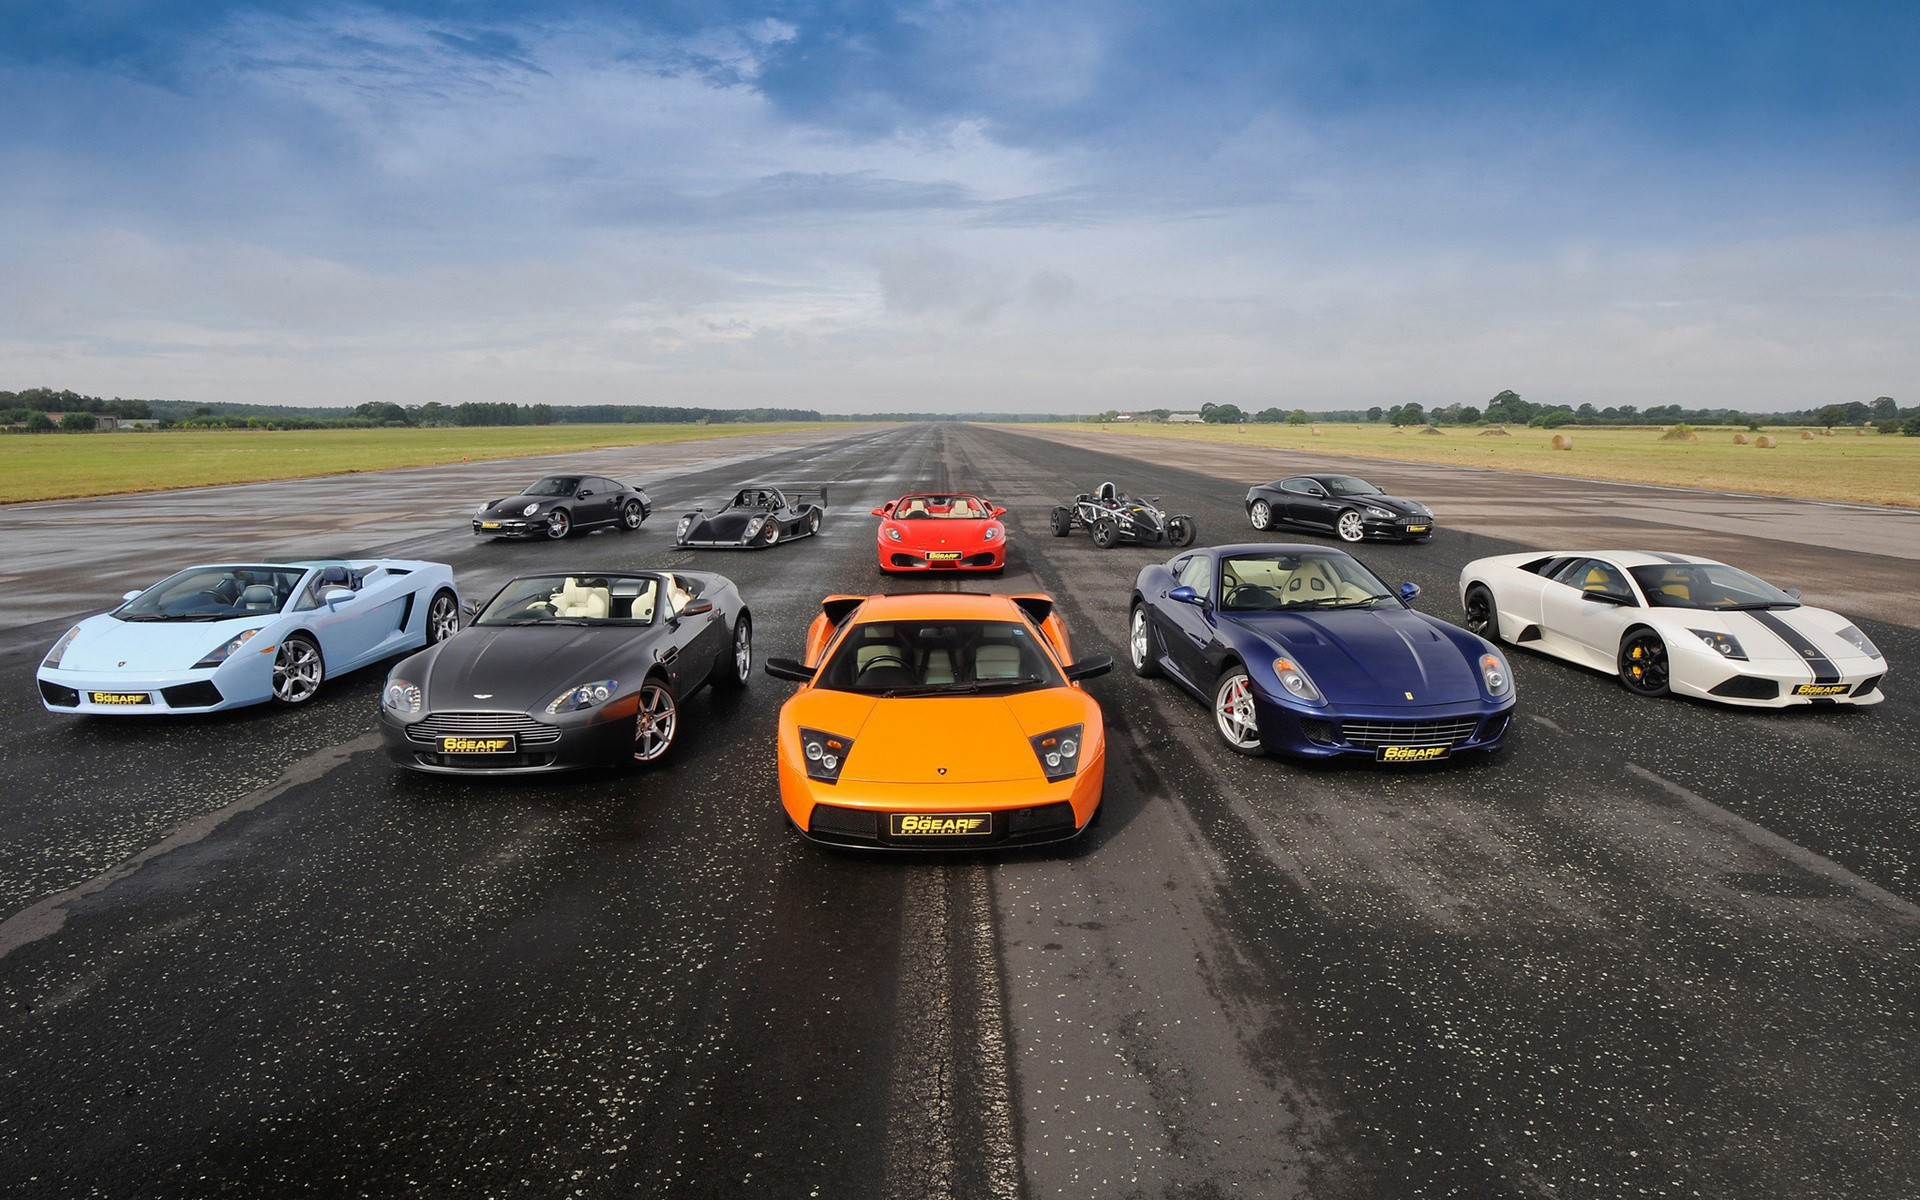 Res: 1920x1200, Tags: Racing Cars Gear